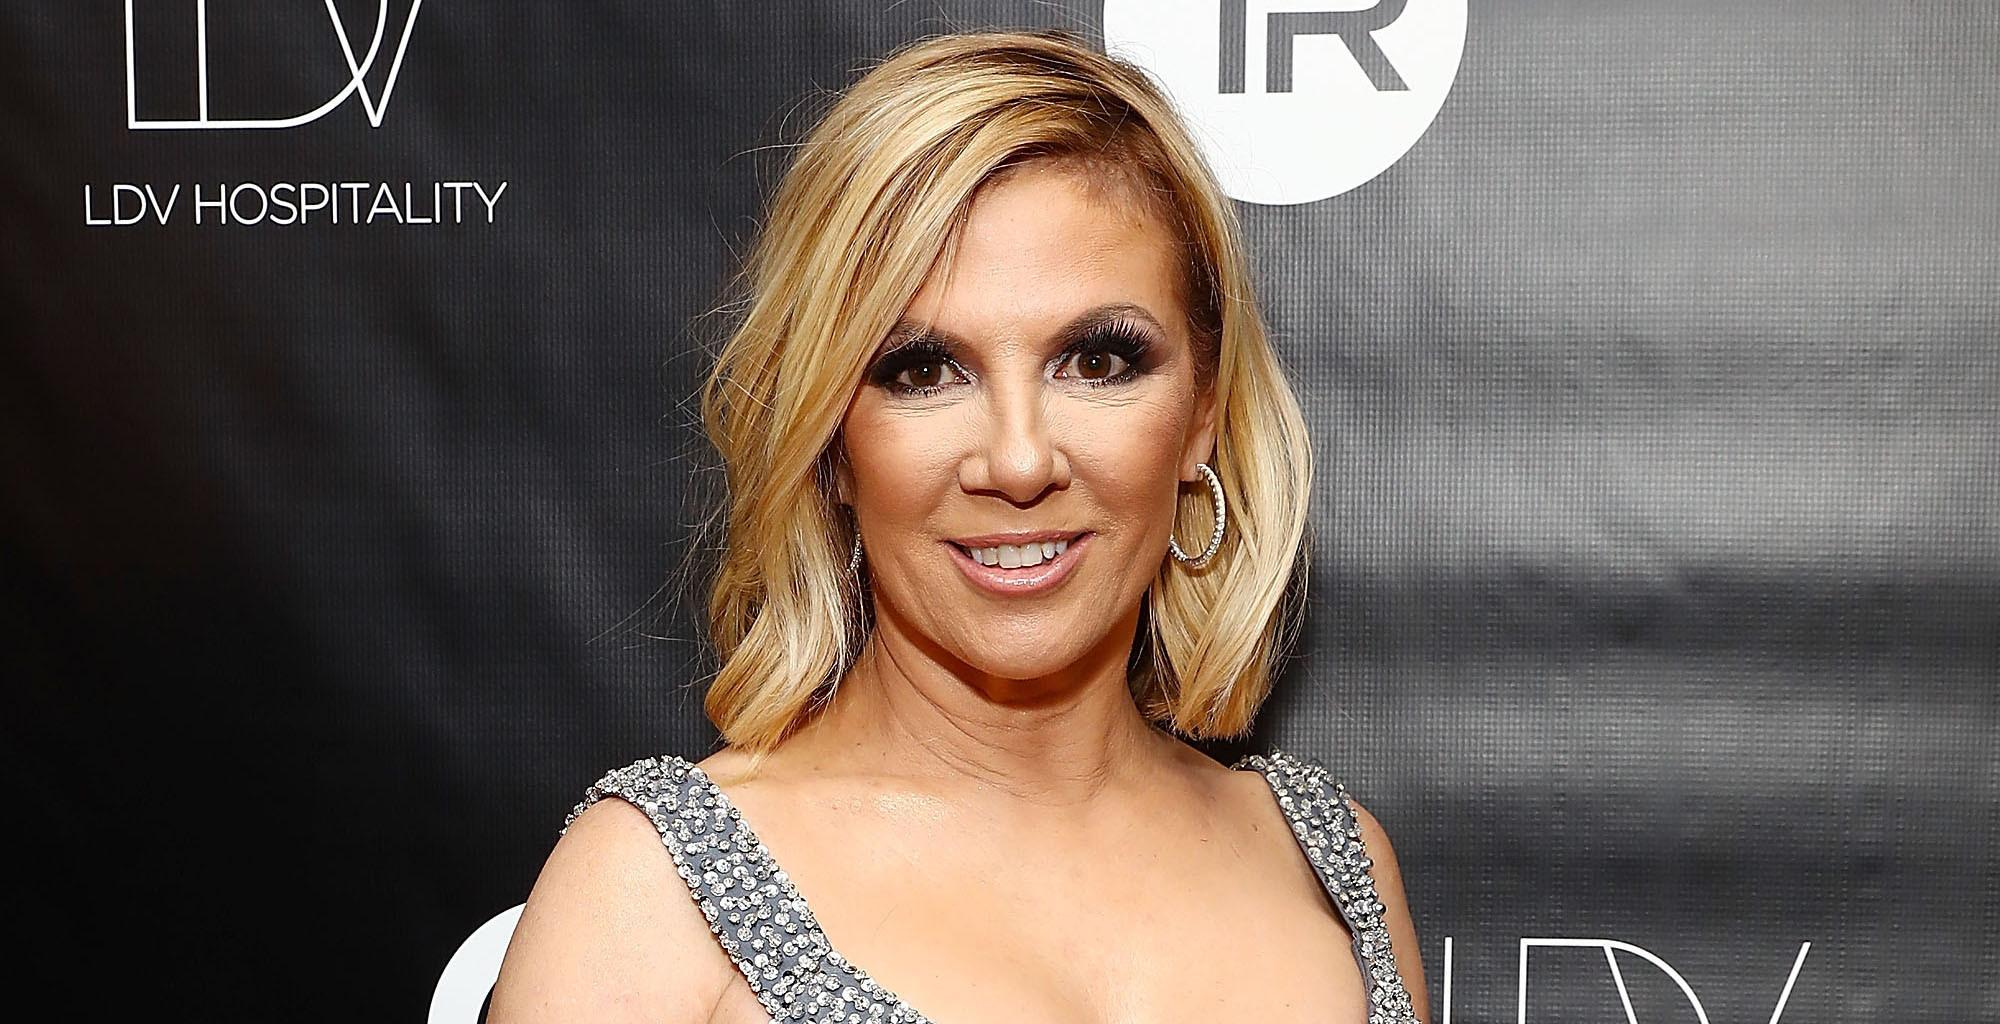 Ramona Singer Calls The Late Dennis Shields Dumb For Using 'Drugs' On RHONY - Apologizes!